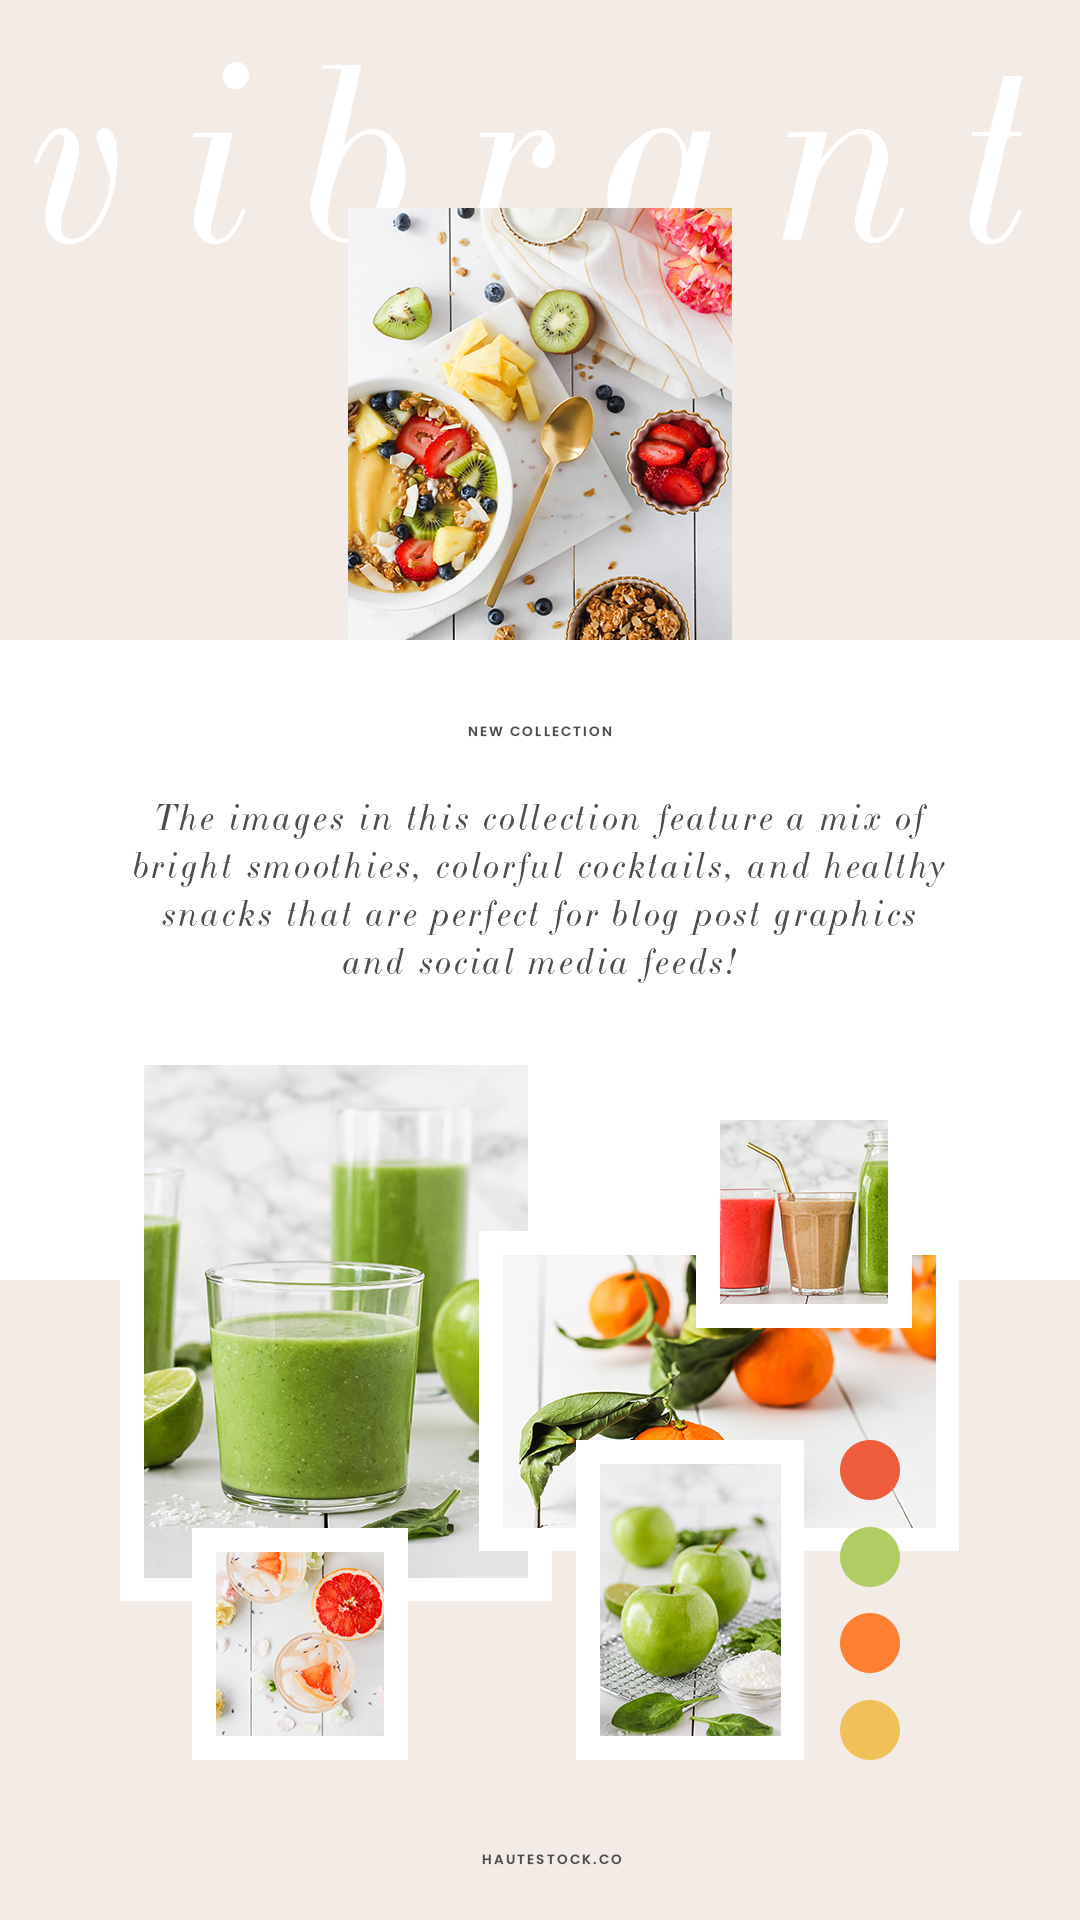 Vibrant, colorful, healthy food stock photos for health coaches, nutritionists, food bloggers and more! Available exclusively for Haute Stock members. These images feature a mix of bright, healthy smoothies, colorful cocktails, and healthy snacks that are perfect for blog post graphics and social media feeds. Click to view the entire collection.